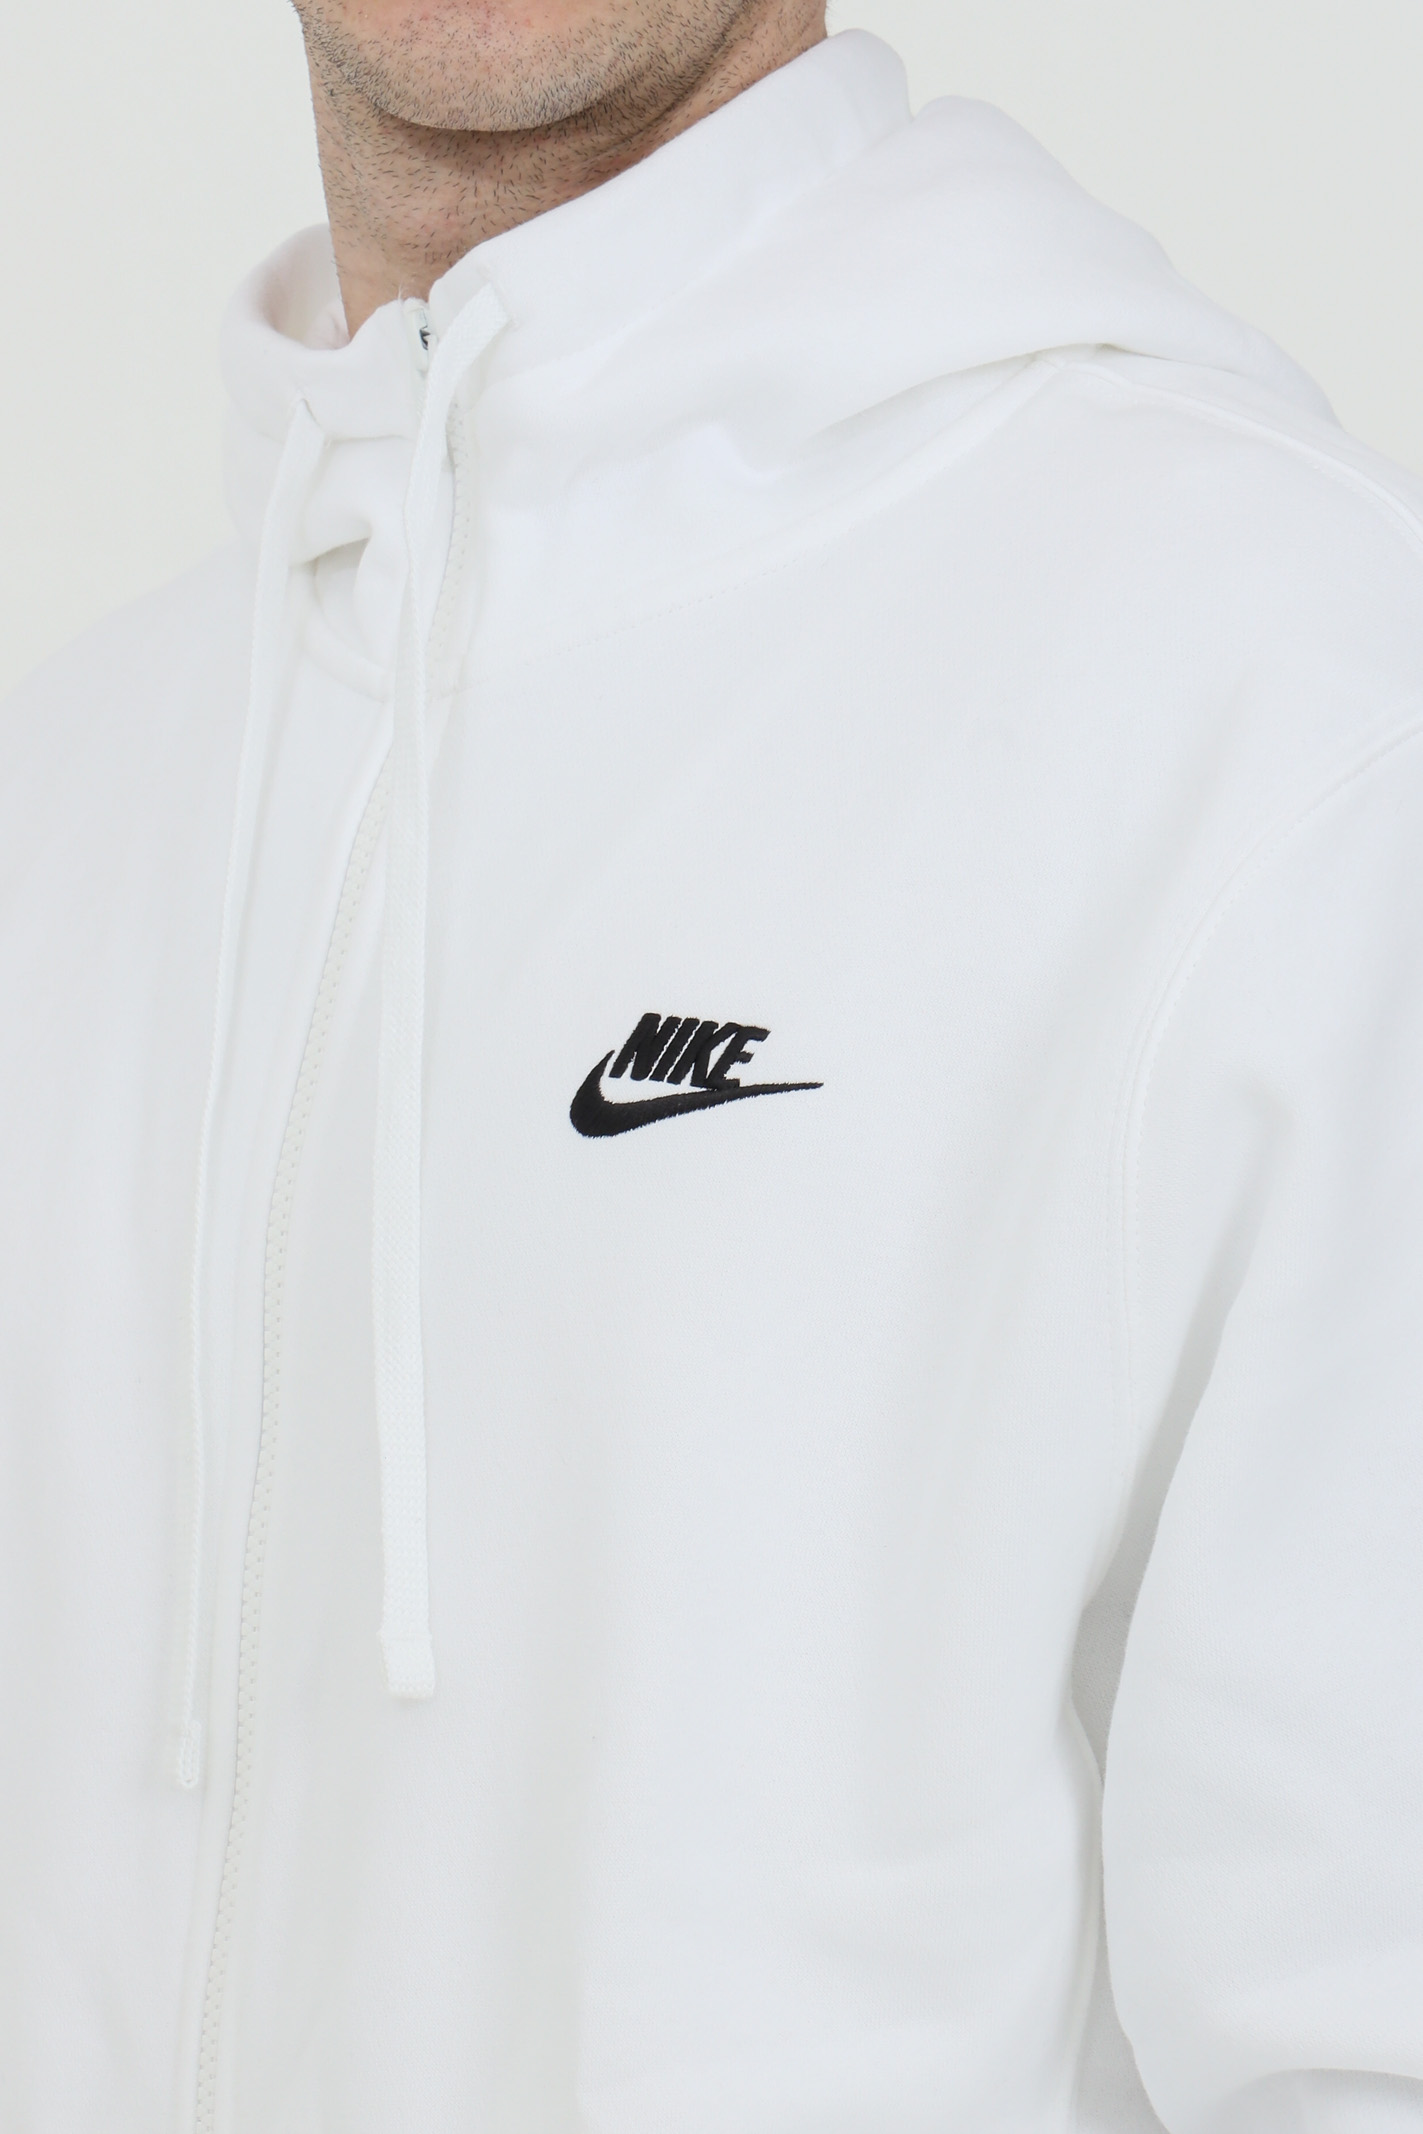 Hoodie with laces, closure with full zip NIKE | Sweatshirt | BV2645100